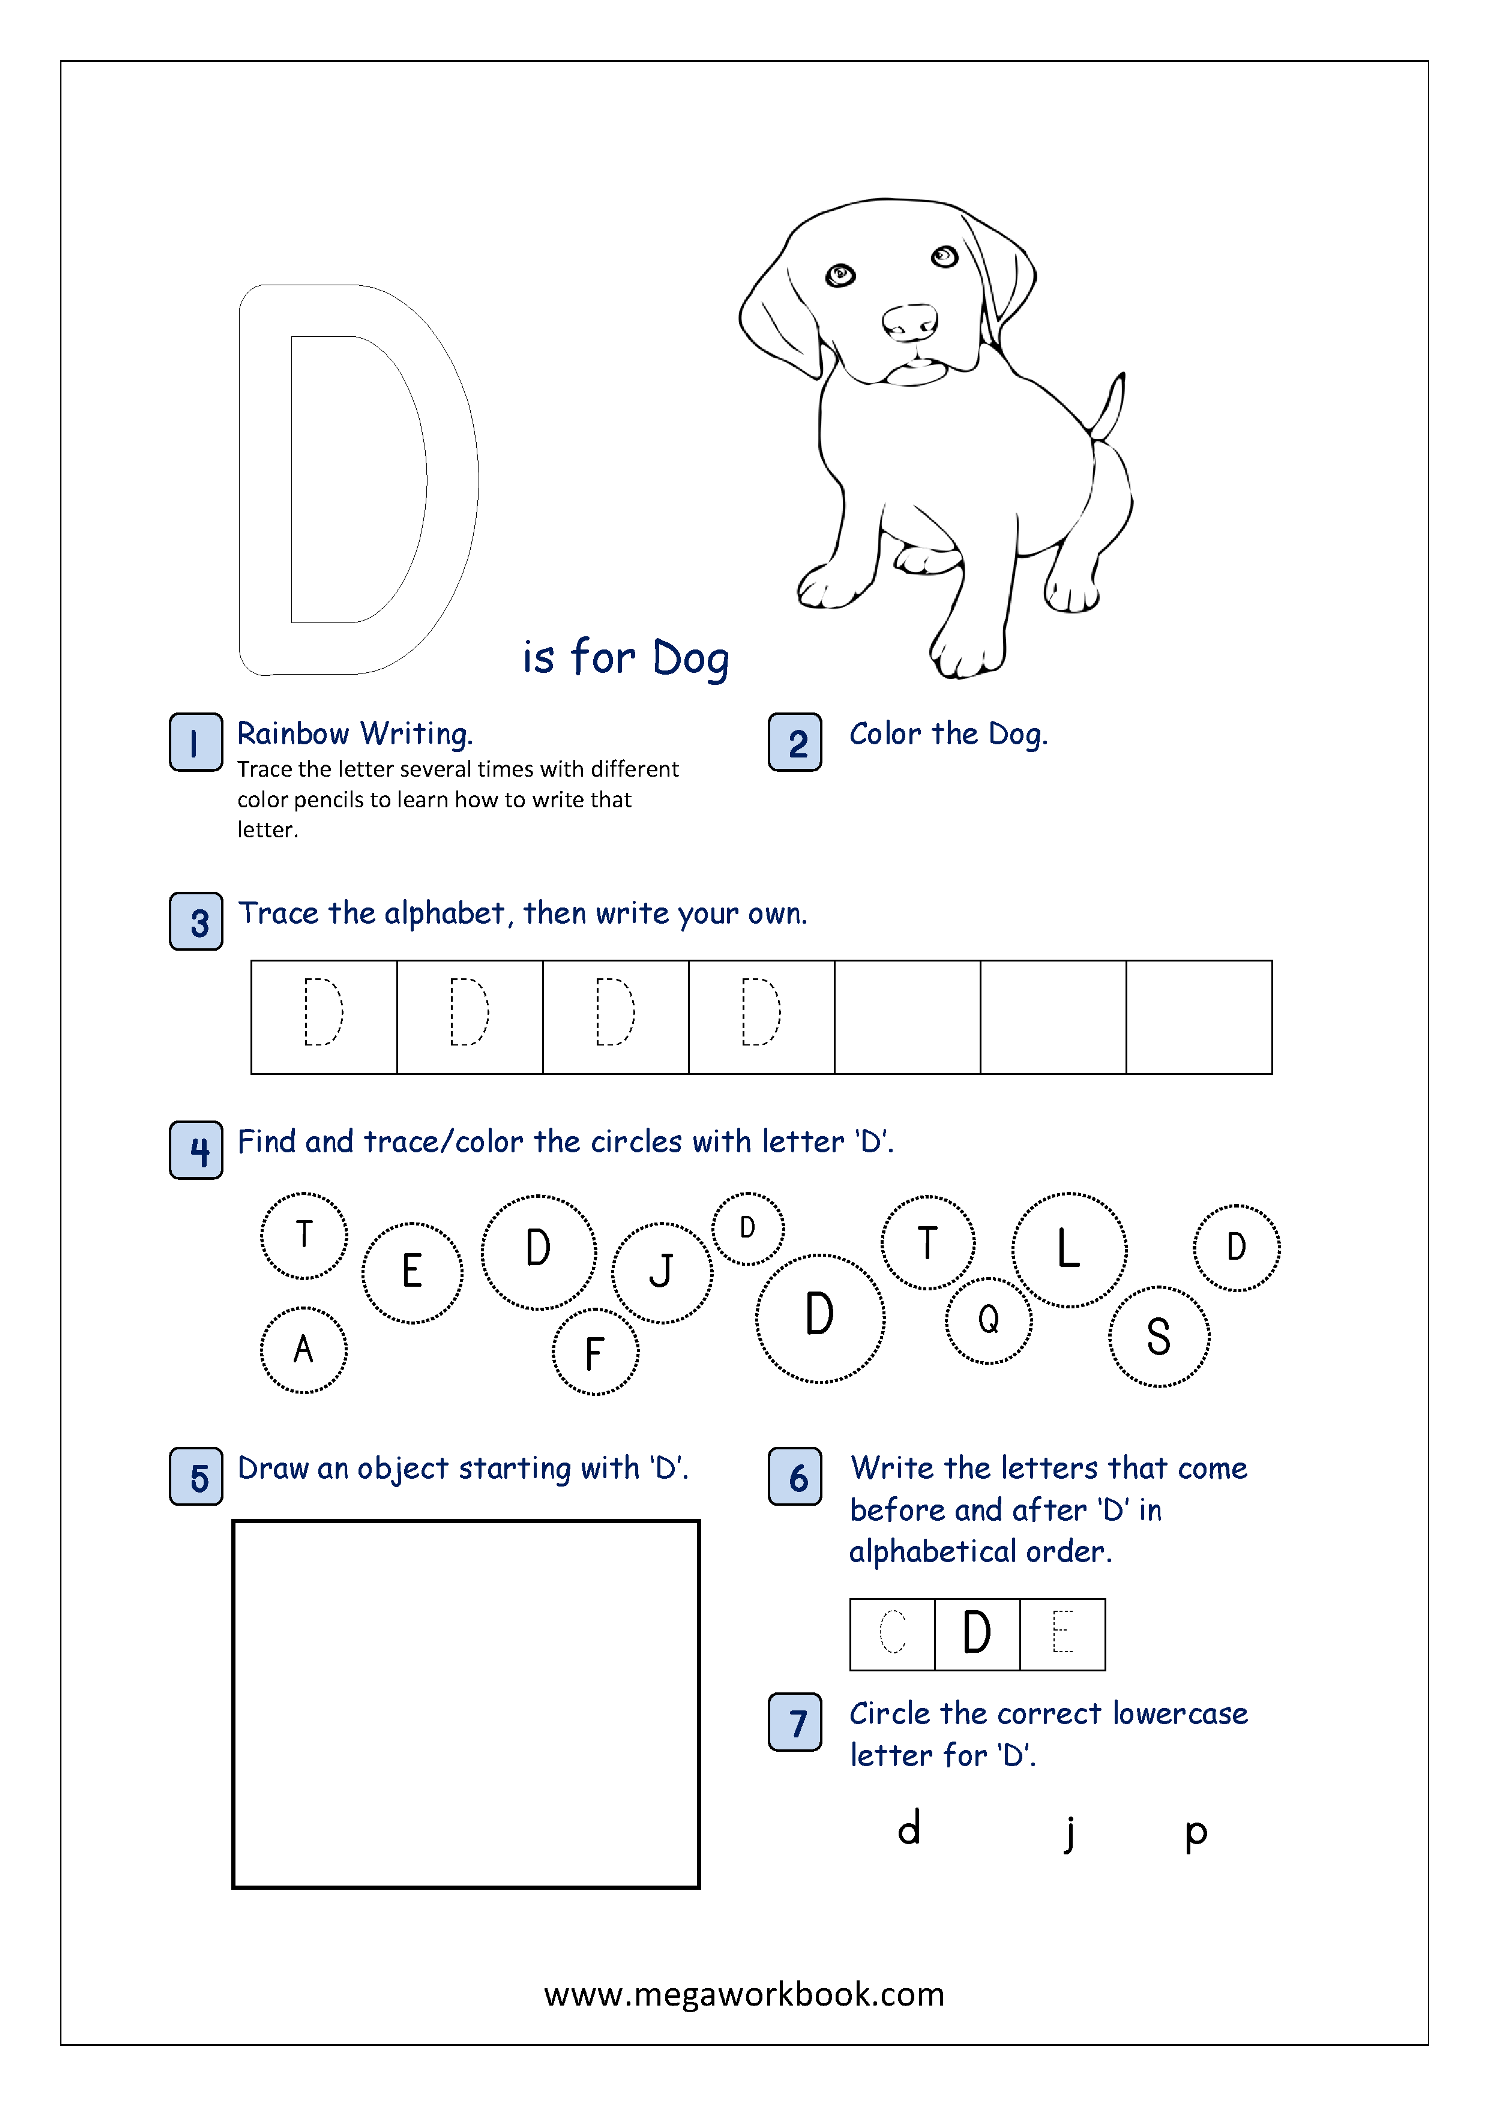 Free Printable Alphabet Recognition Worksheets For Capital